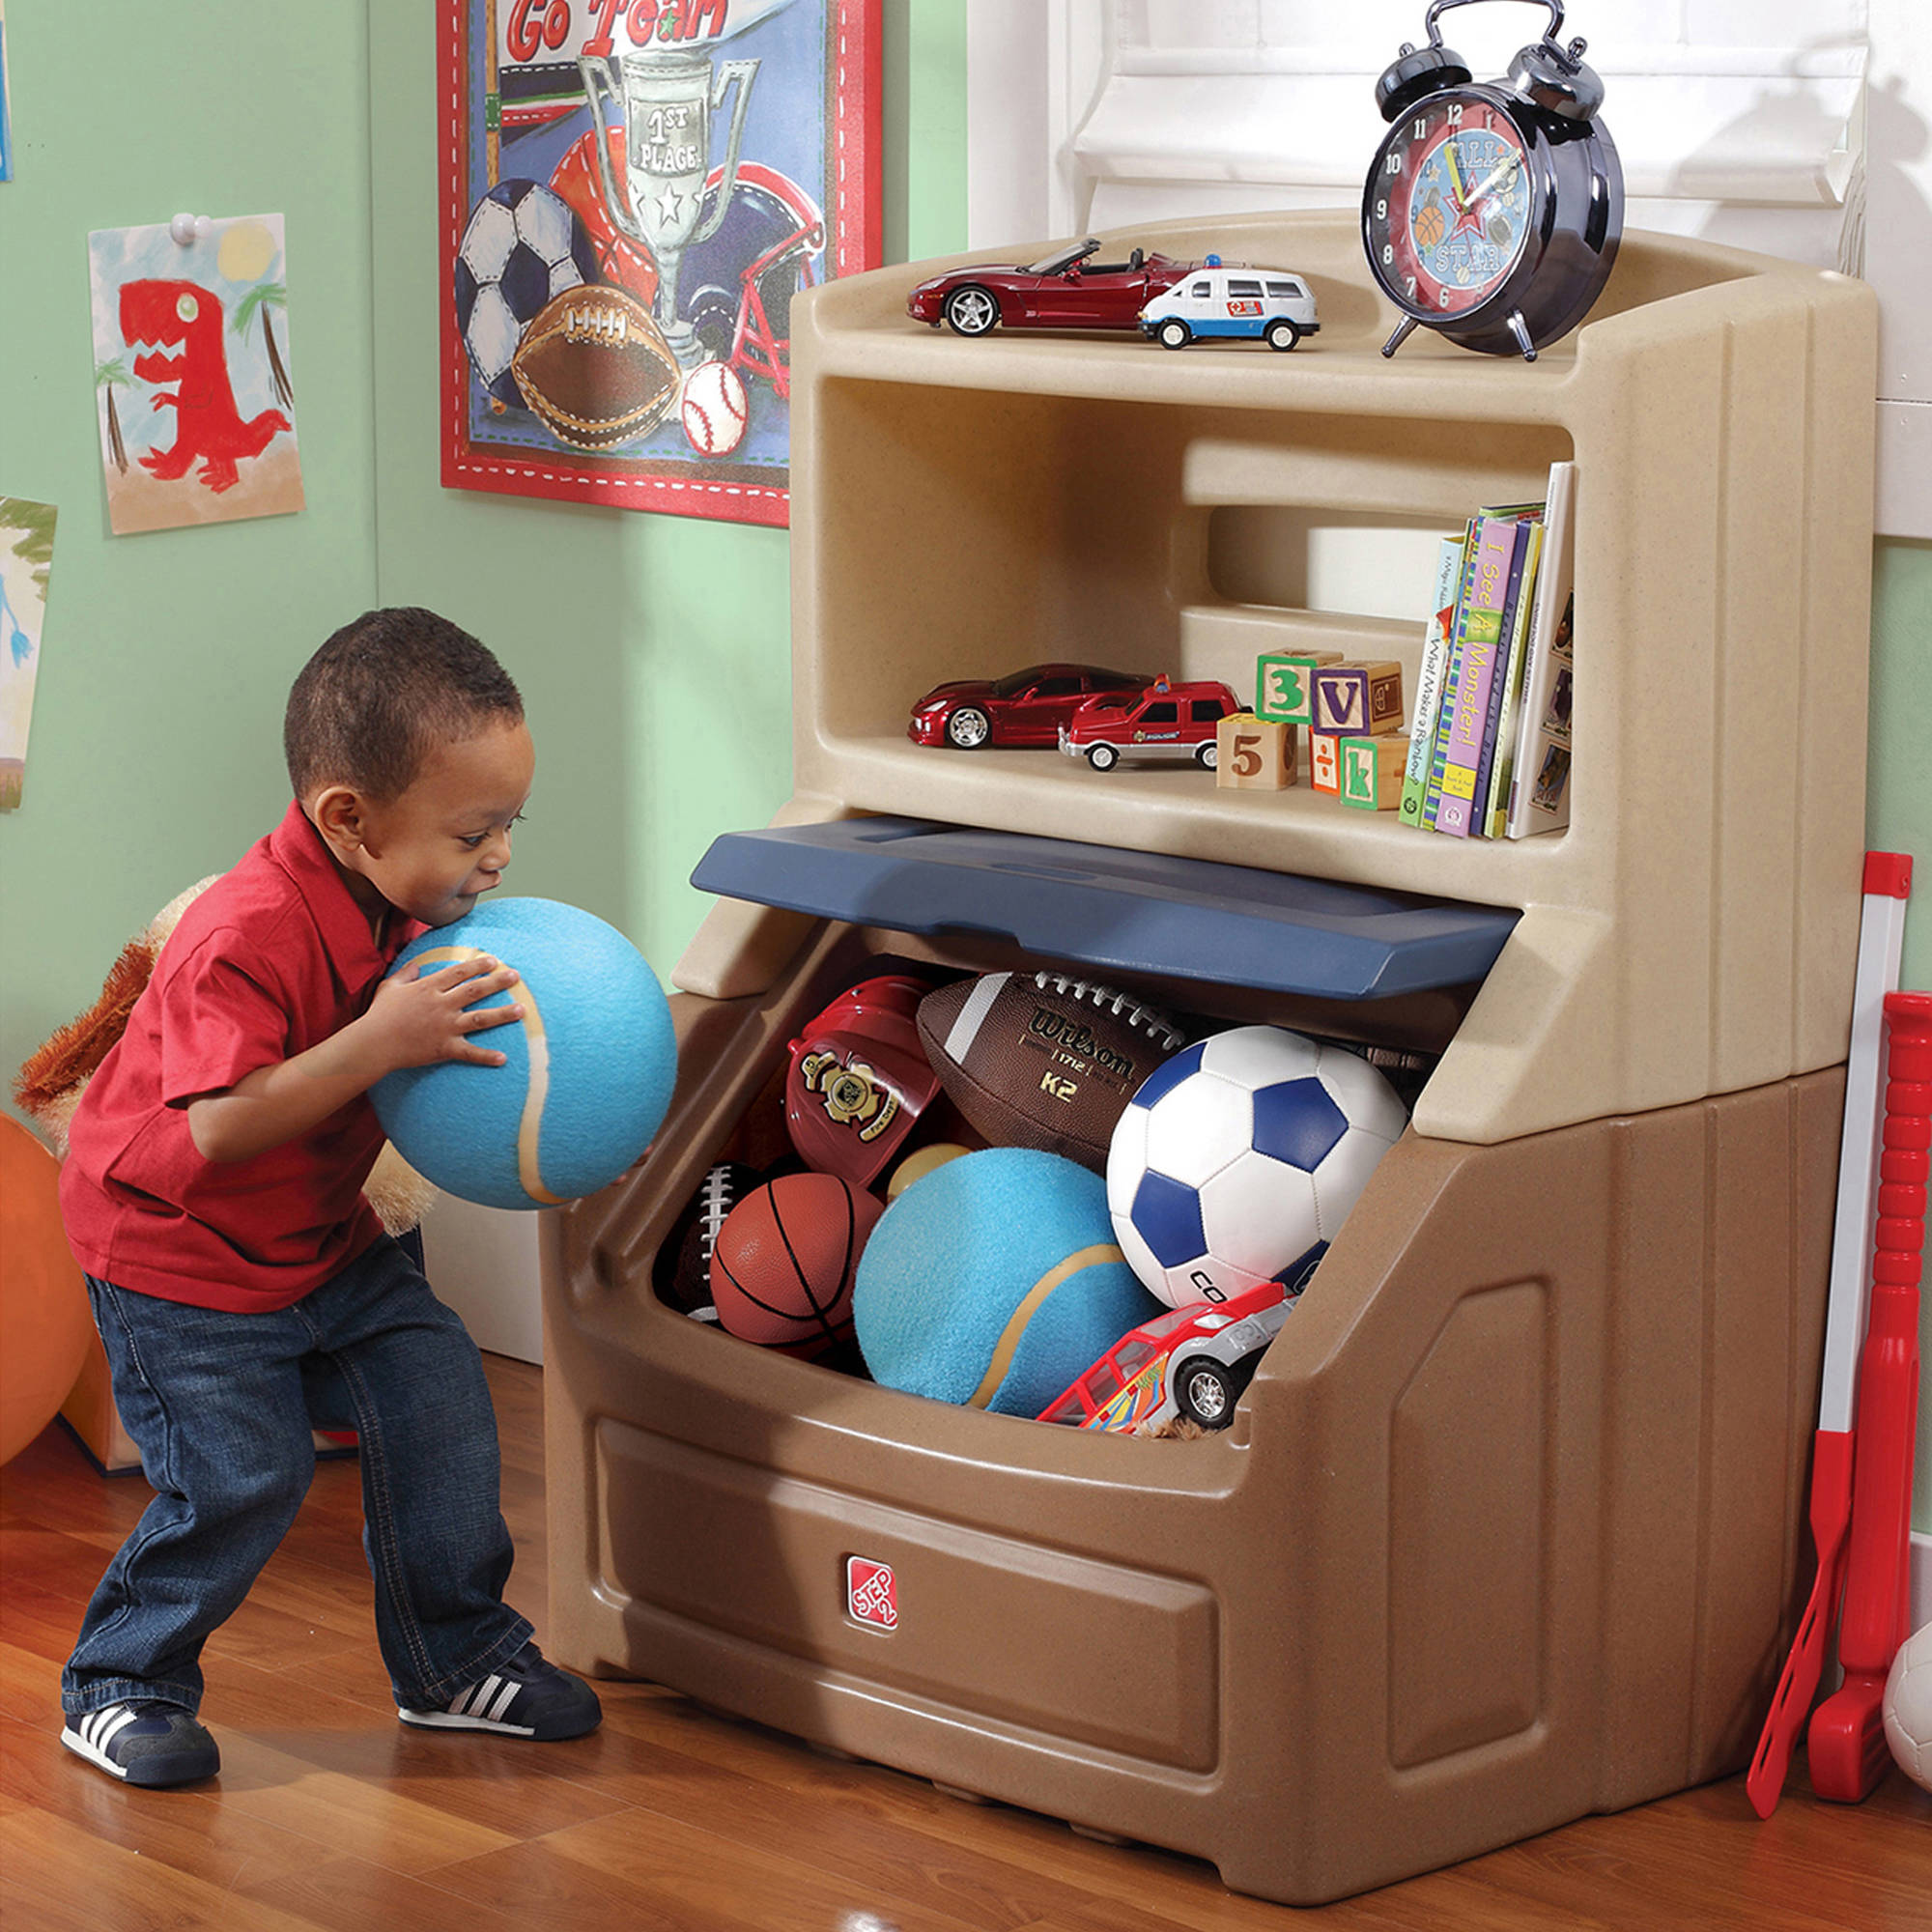 Details About Kids Toy Box Bookcase Storage Chest Bedroom Playroom Organizer Bin Trunk Bench